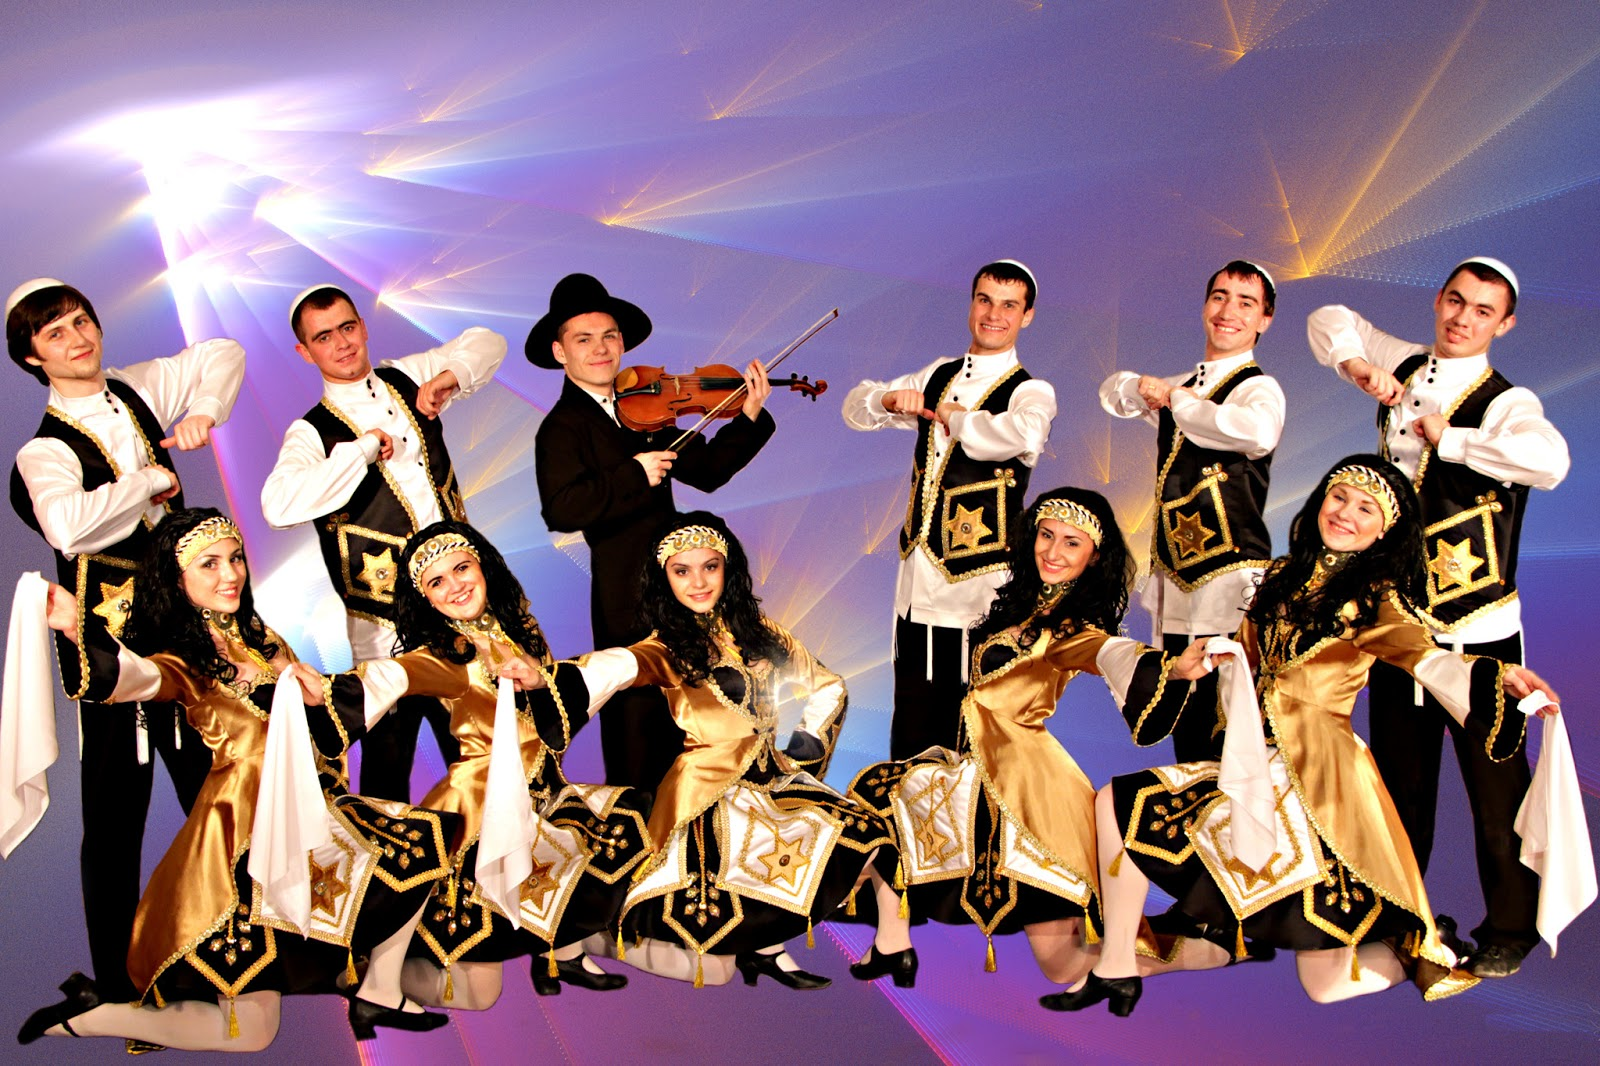 israeli folk dance Israeli folk dancing: israeli folk dance in boston, including sunday night israeli dancing at temple emeth in chestnut hill (formerly located at harvard hillel), and monday night dancing at congregation kehillath israel in brookline.